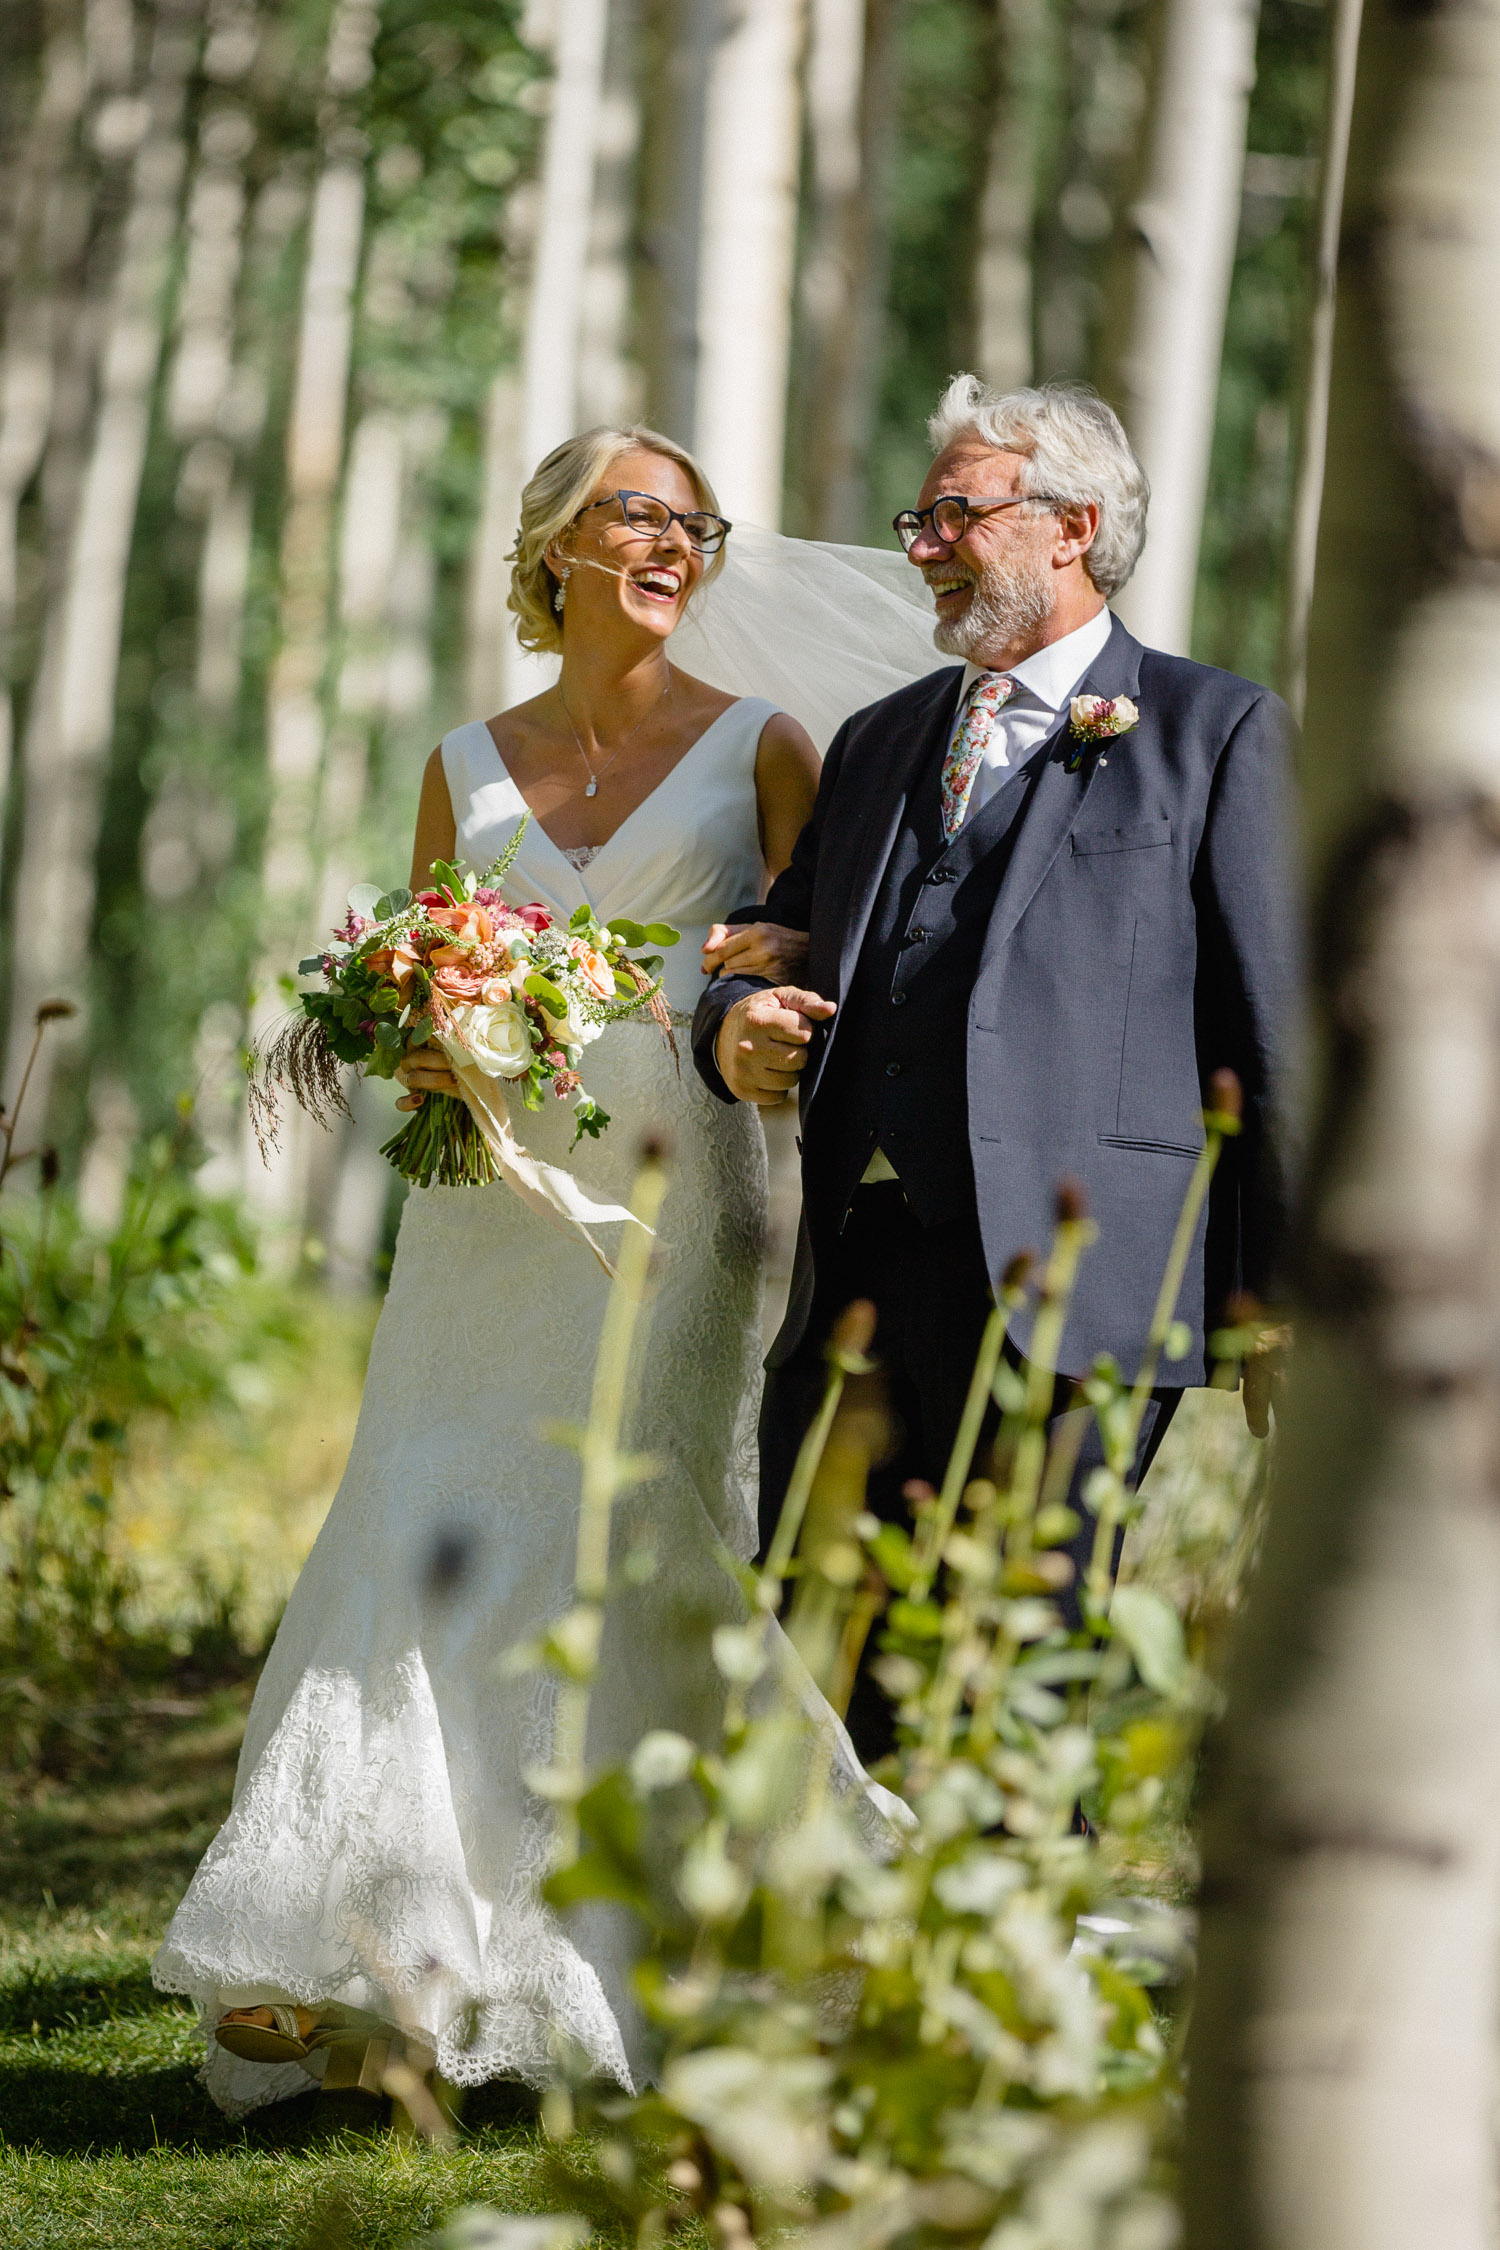 father walking bride down outside aisle in trees